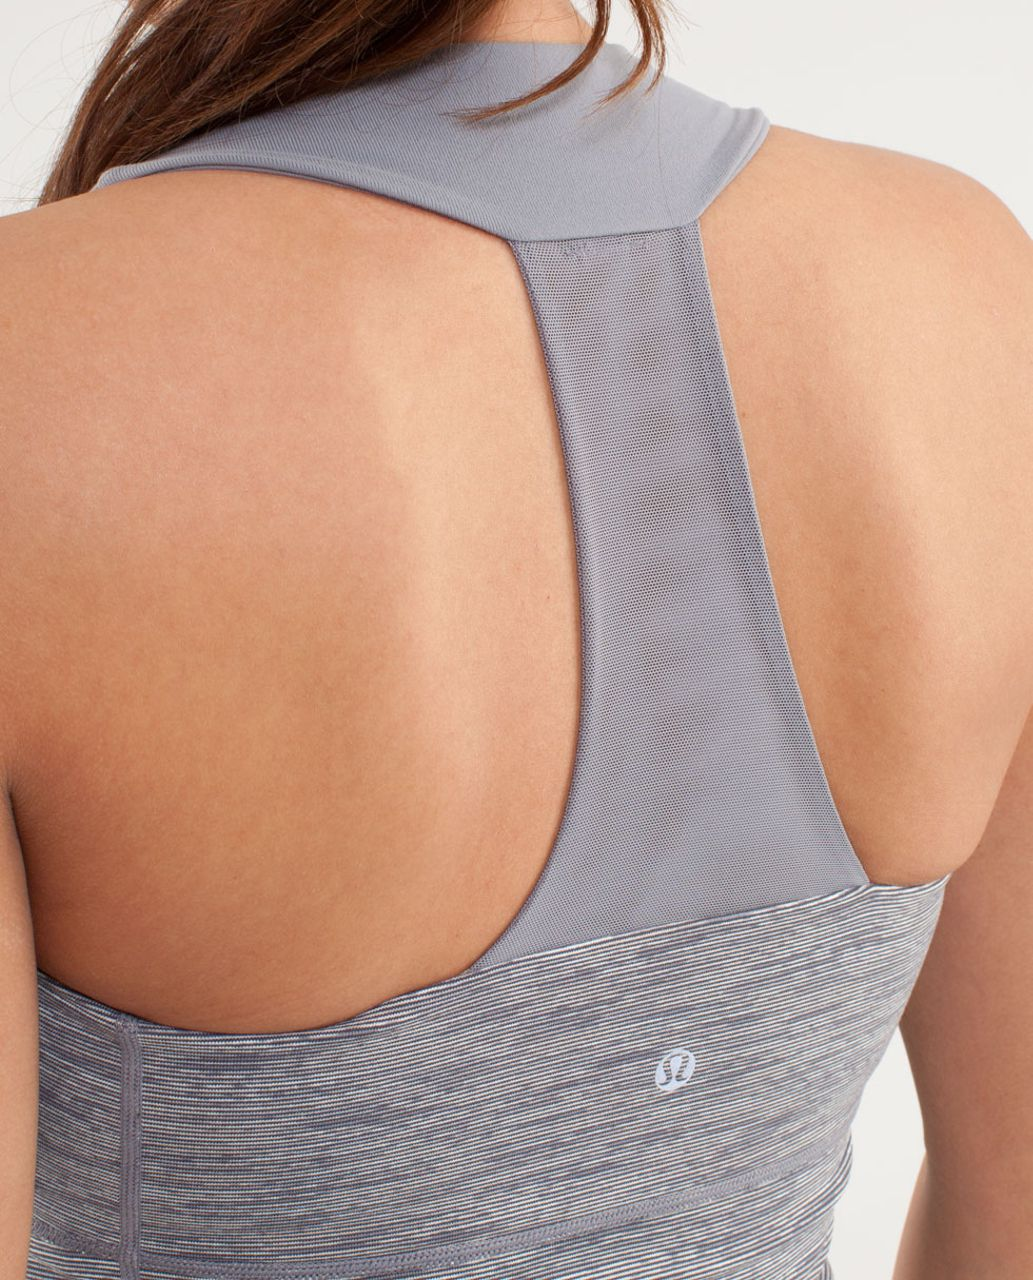 Lululemon Scoop Neck Tank - Wee Are From Space Coal Fossil /  Fossil